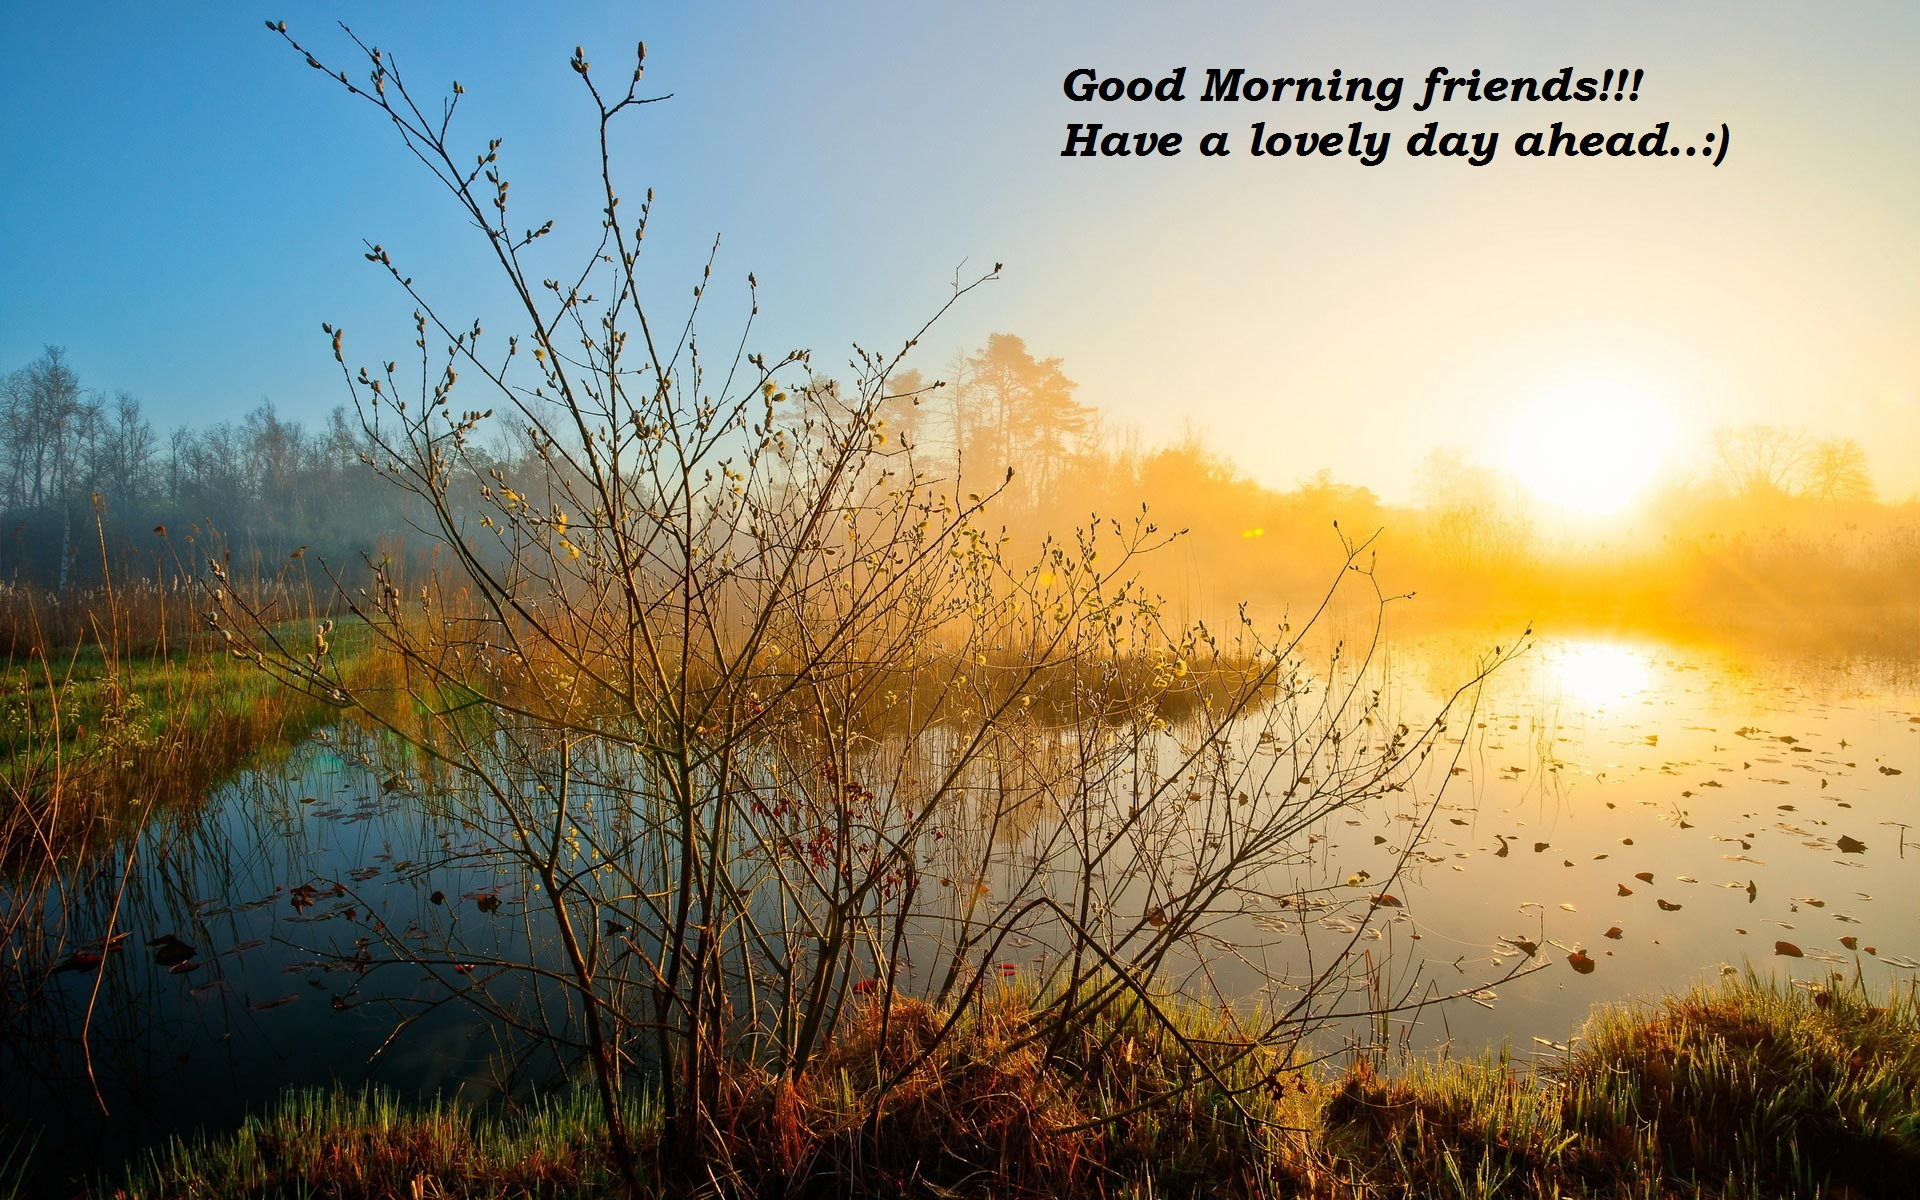 Good Morning images download for free images